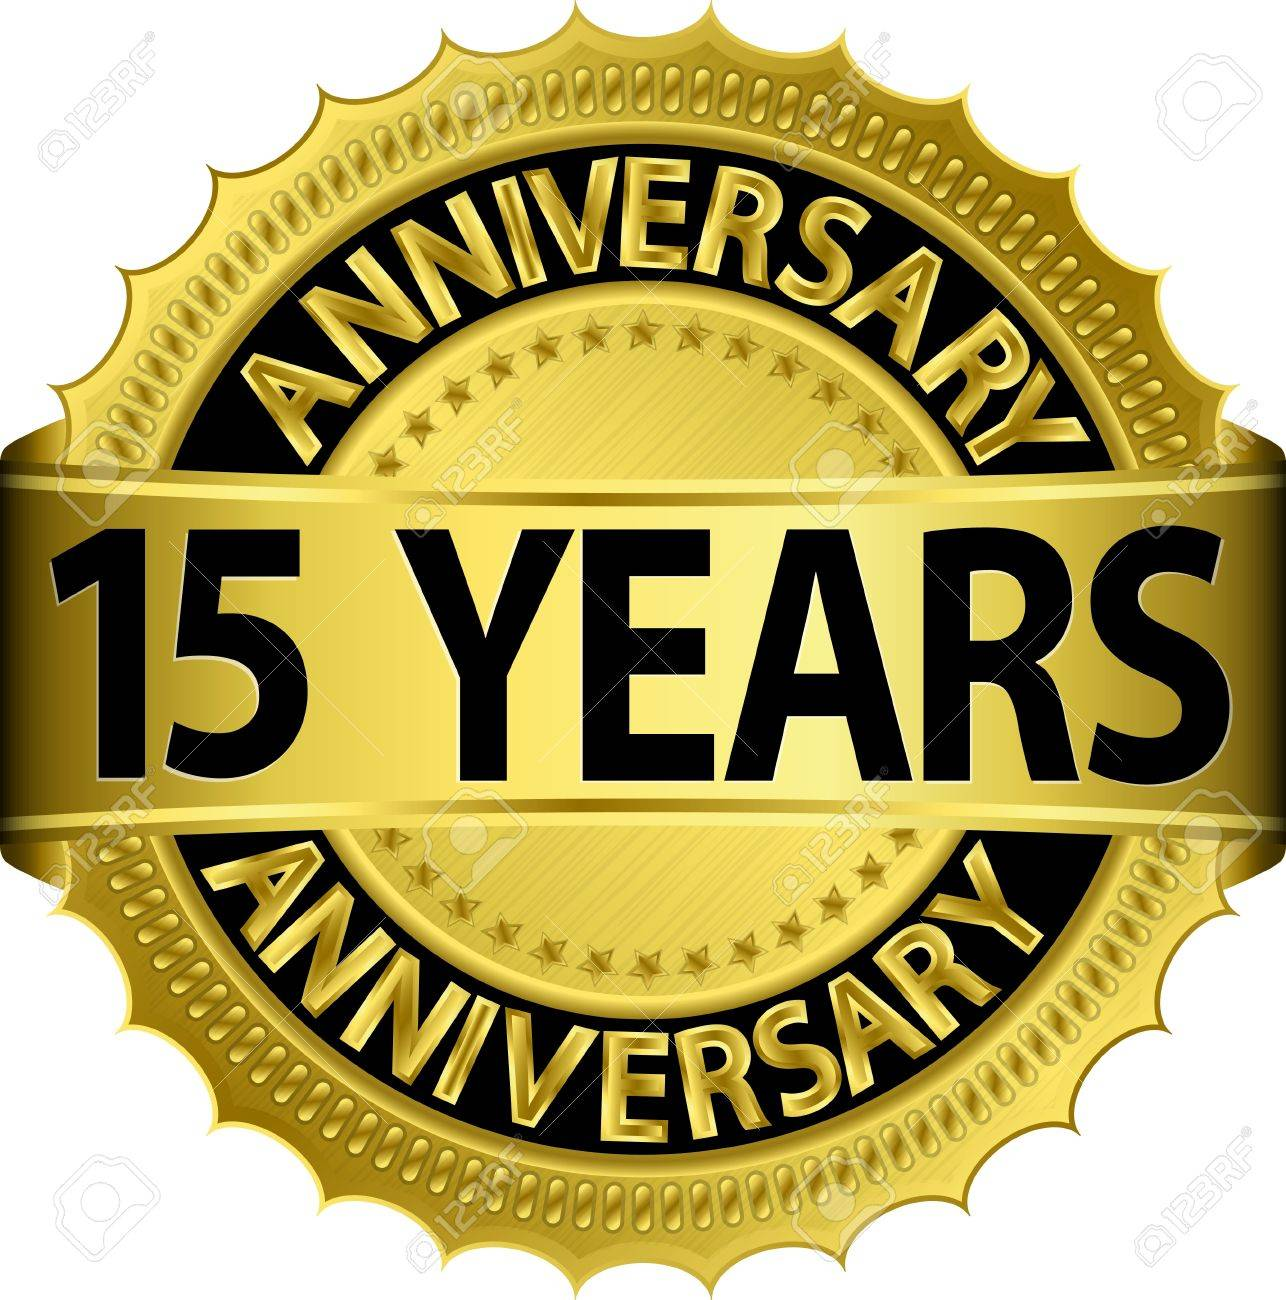 15 Years Anniversary Golden Label With Ribbon Vector Illustration Royalty Free Cliparts Vectors And Stock Illustration Image 15791147